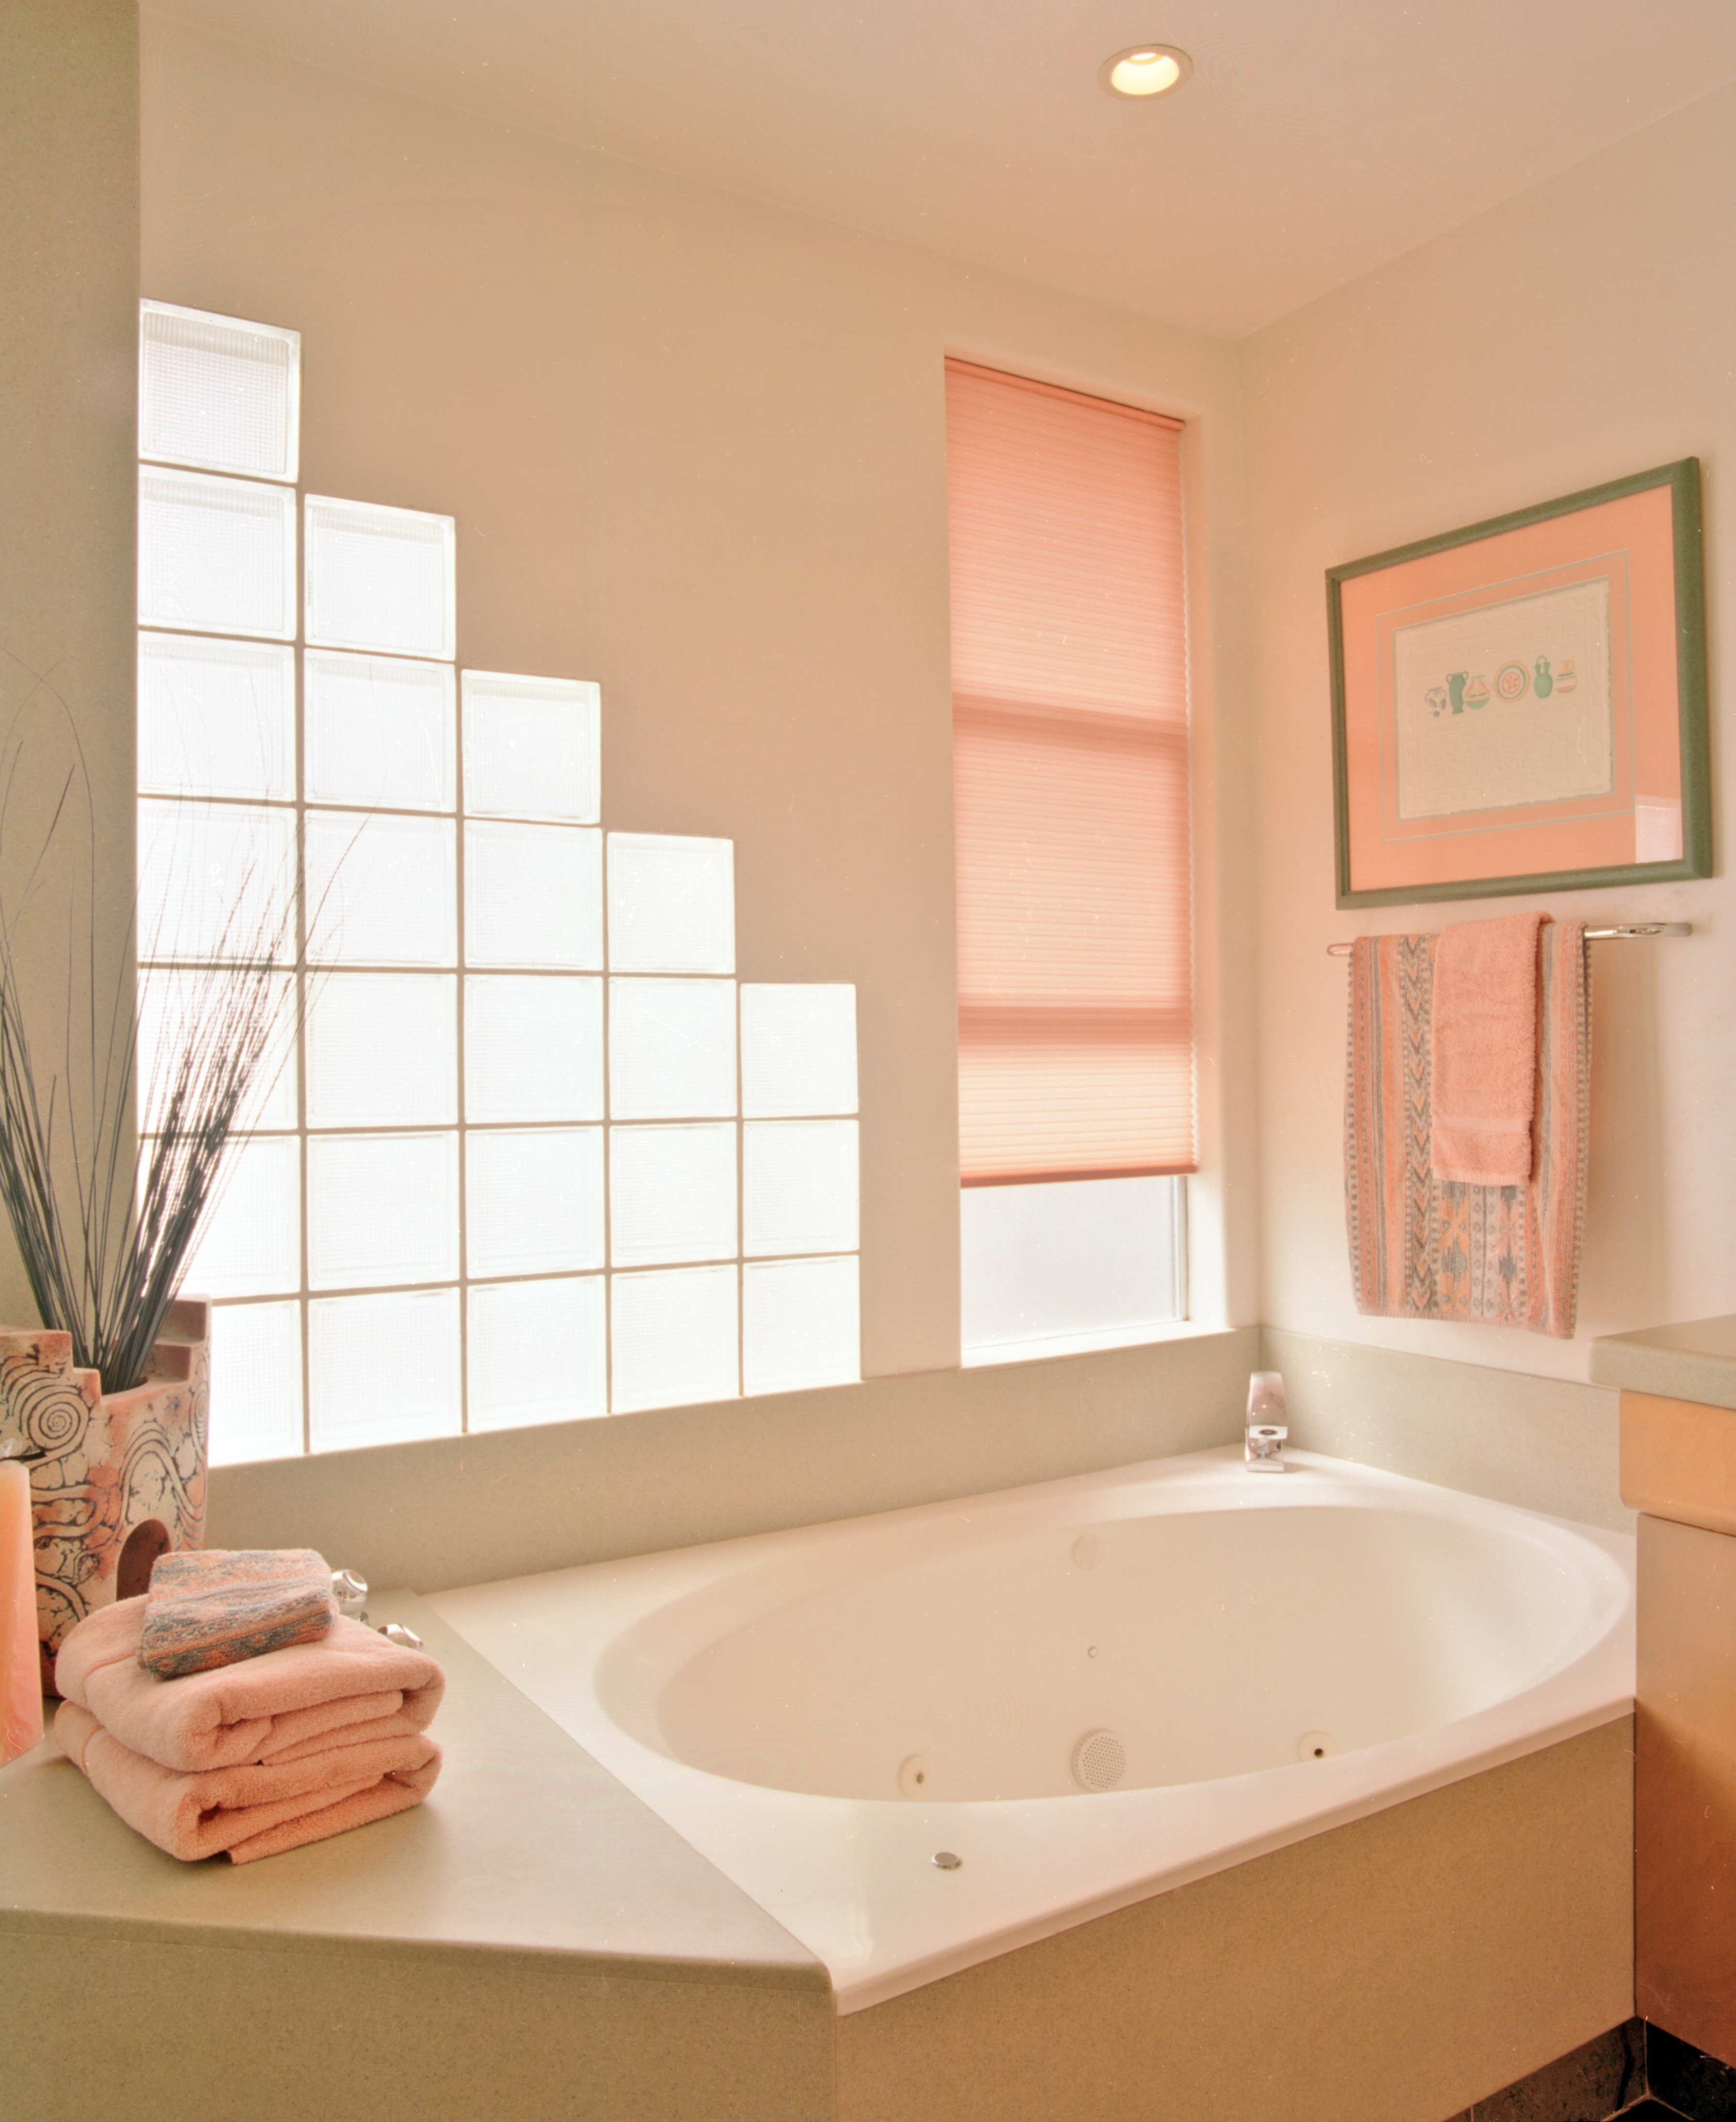 Bathroom-Surround-Cultured Marble-Salmon-LOW